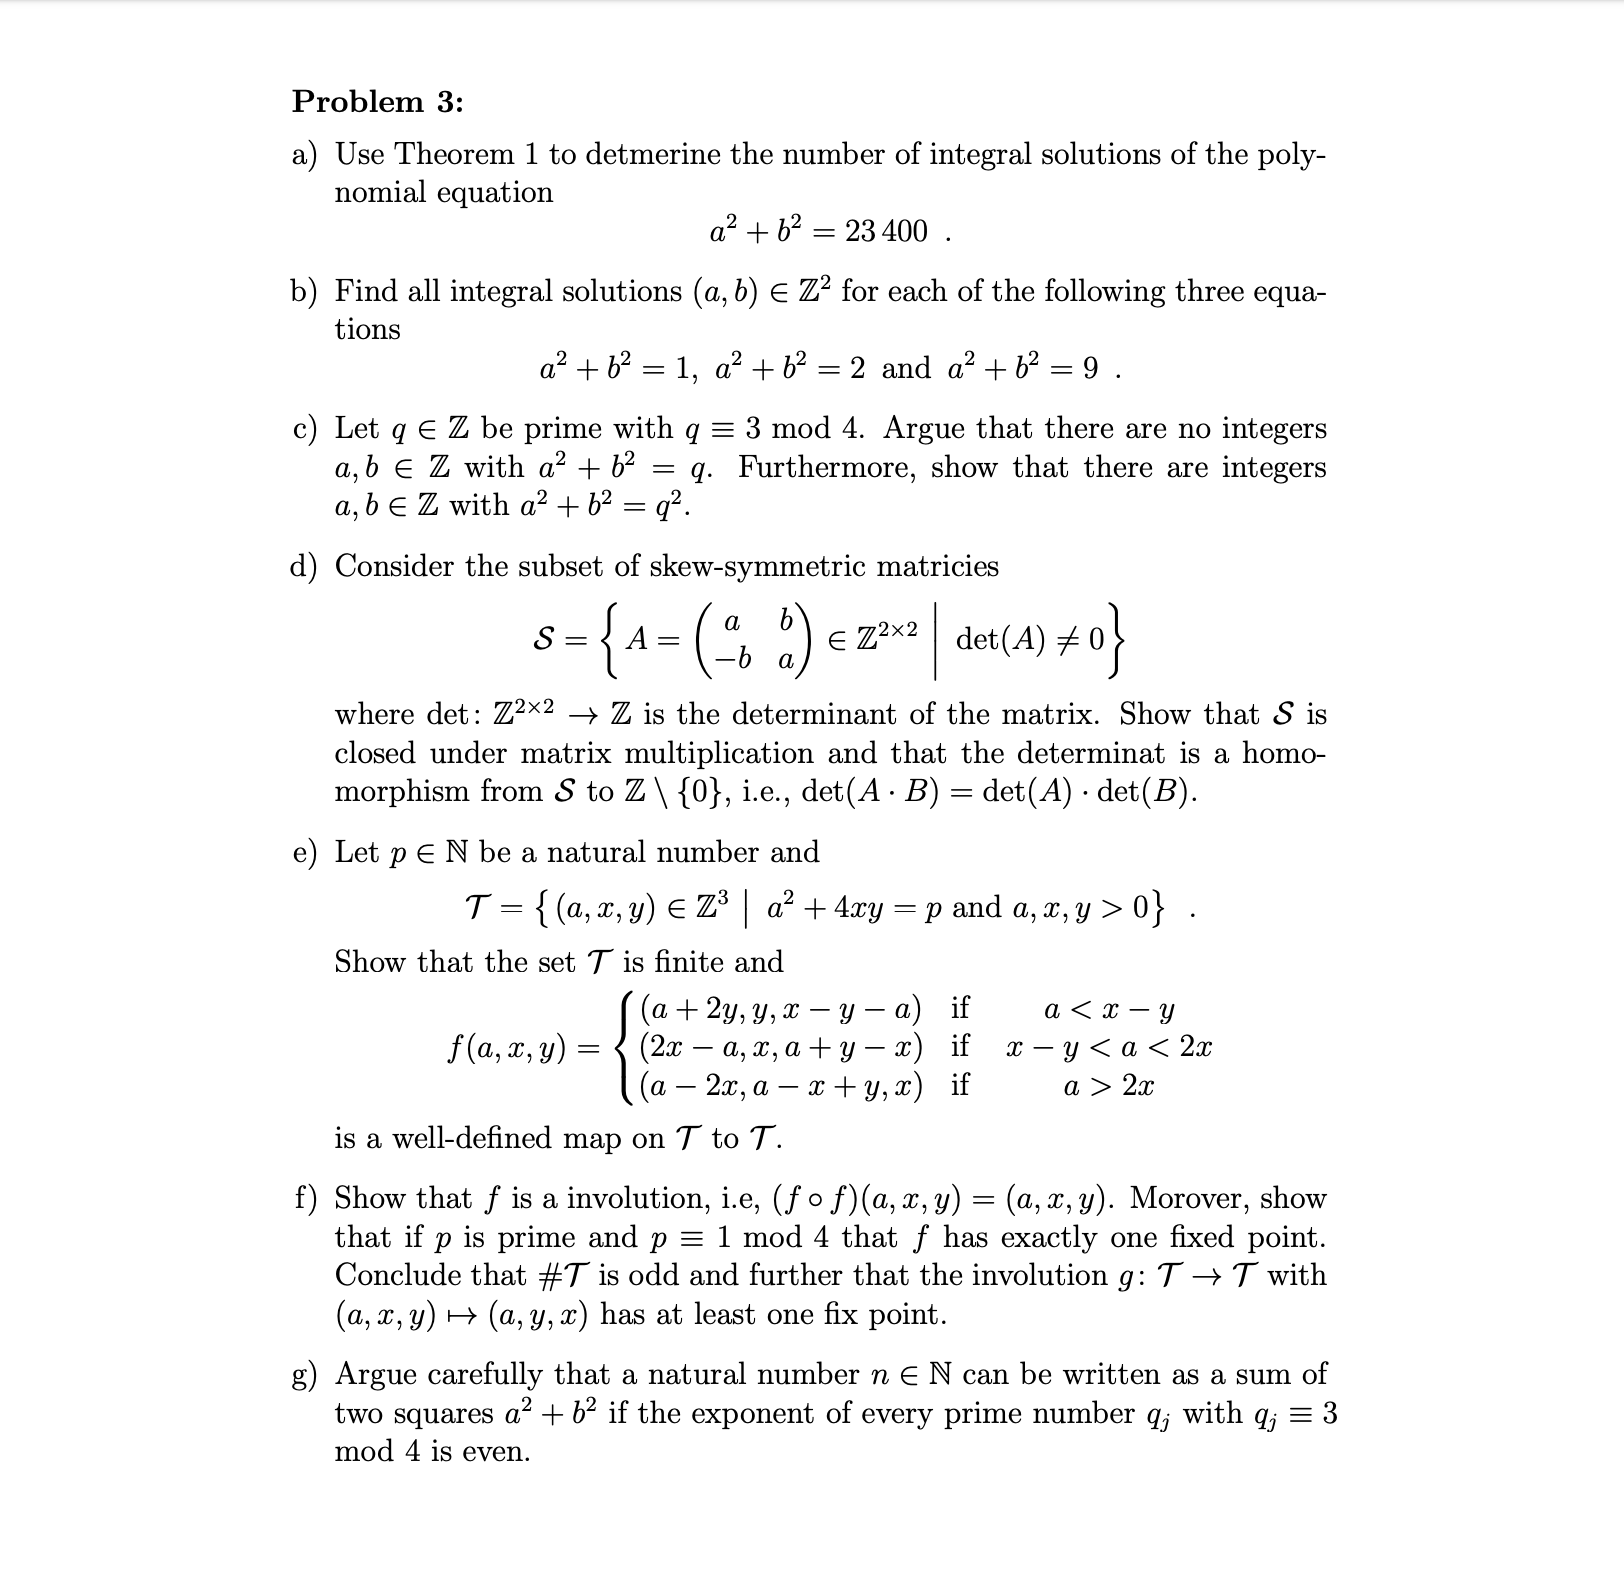 Problem 3: a) Use Theorem 1 to detmerine the number of integral solutions of the poly- nomial equation a2b223400 11 b) Find all integral solutions (a, b) E Z2 for each of the following three equa- tions a2b21, a2 b2 2 and a2b2 =9 . c) Let q E Z be prime with q a, b E Z with a2 + b2 a, bE Z with a2b2 = q2 3 mod 4. Argue that there are no integers q. Furthermore, show that there are integers d) Consider the subset of skew-symmetric matricies 8{A=(2) e Z2x2det(A) S a where det: Zx2 > Z is the determinant of the matrix. Show that S is closed under matrix multiplication and that the determinat is a homo- morphism from S to Z\ {0}, i.e., det(A B) det(A) det(B) e) Let pE N be a natural number and T {(a,x, y) E Z3a2 + 4xry p and a, z, y > 0} . Show that the set T is finite and (а + 2у, у, х — у — а) if (2х — а, х, а + у — 2) if (a 2x, a y, x) if f(a, x, y) х — у <а< 2x a > 2x is a well-defined map on T to T. f) Show that f is a involution, i.e, (fo f)(a, x, y) (a, x, y). Morover, show that if p is prime and p = 1 mod 4 that f has exactly one fixed point Conclude that #T is odd and further that the involution g: T ->T with (a, x, y)(a, y, x) has at least one fix point. g) Argue carefully that a natural number n E N can be written as a sum of two squares a +b2 if the exponent of every prime number qj with qj = 3 mod 4 is even.